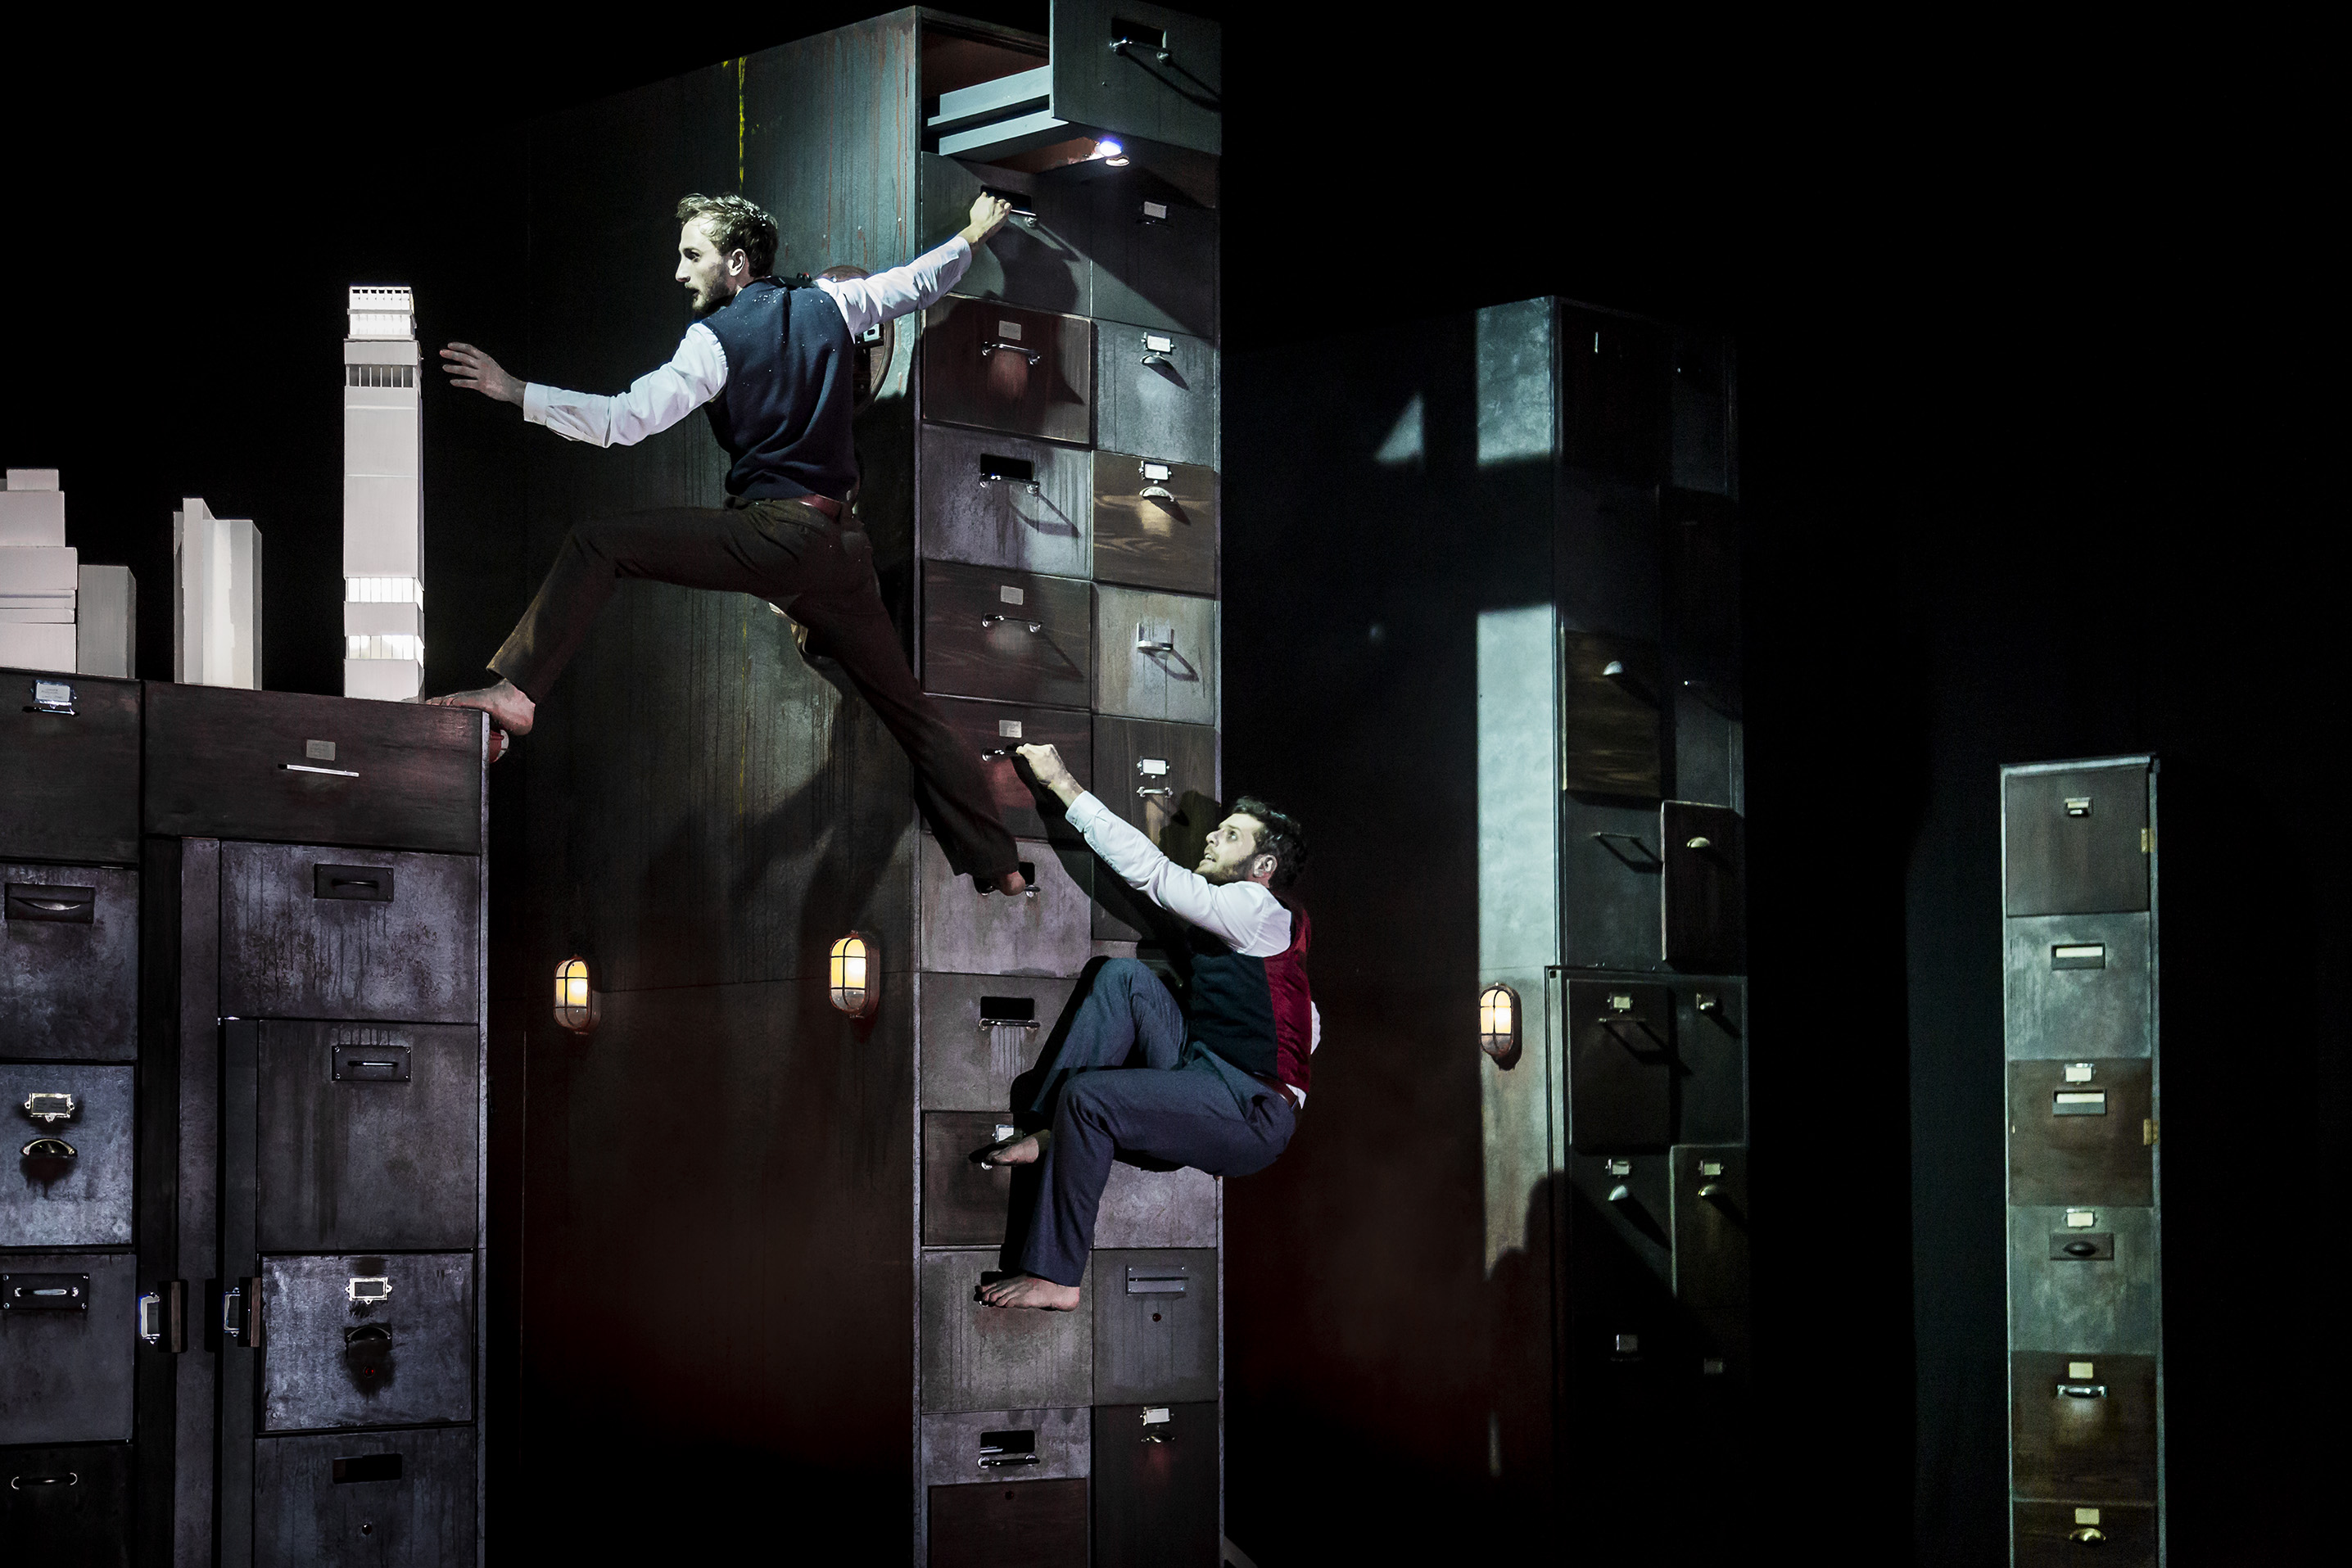 Actors climb fake filing cabinets as part of an elaborate set at Gecko Theatre.